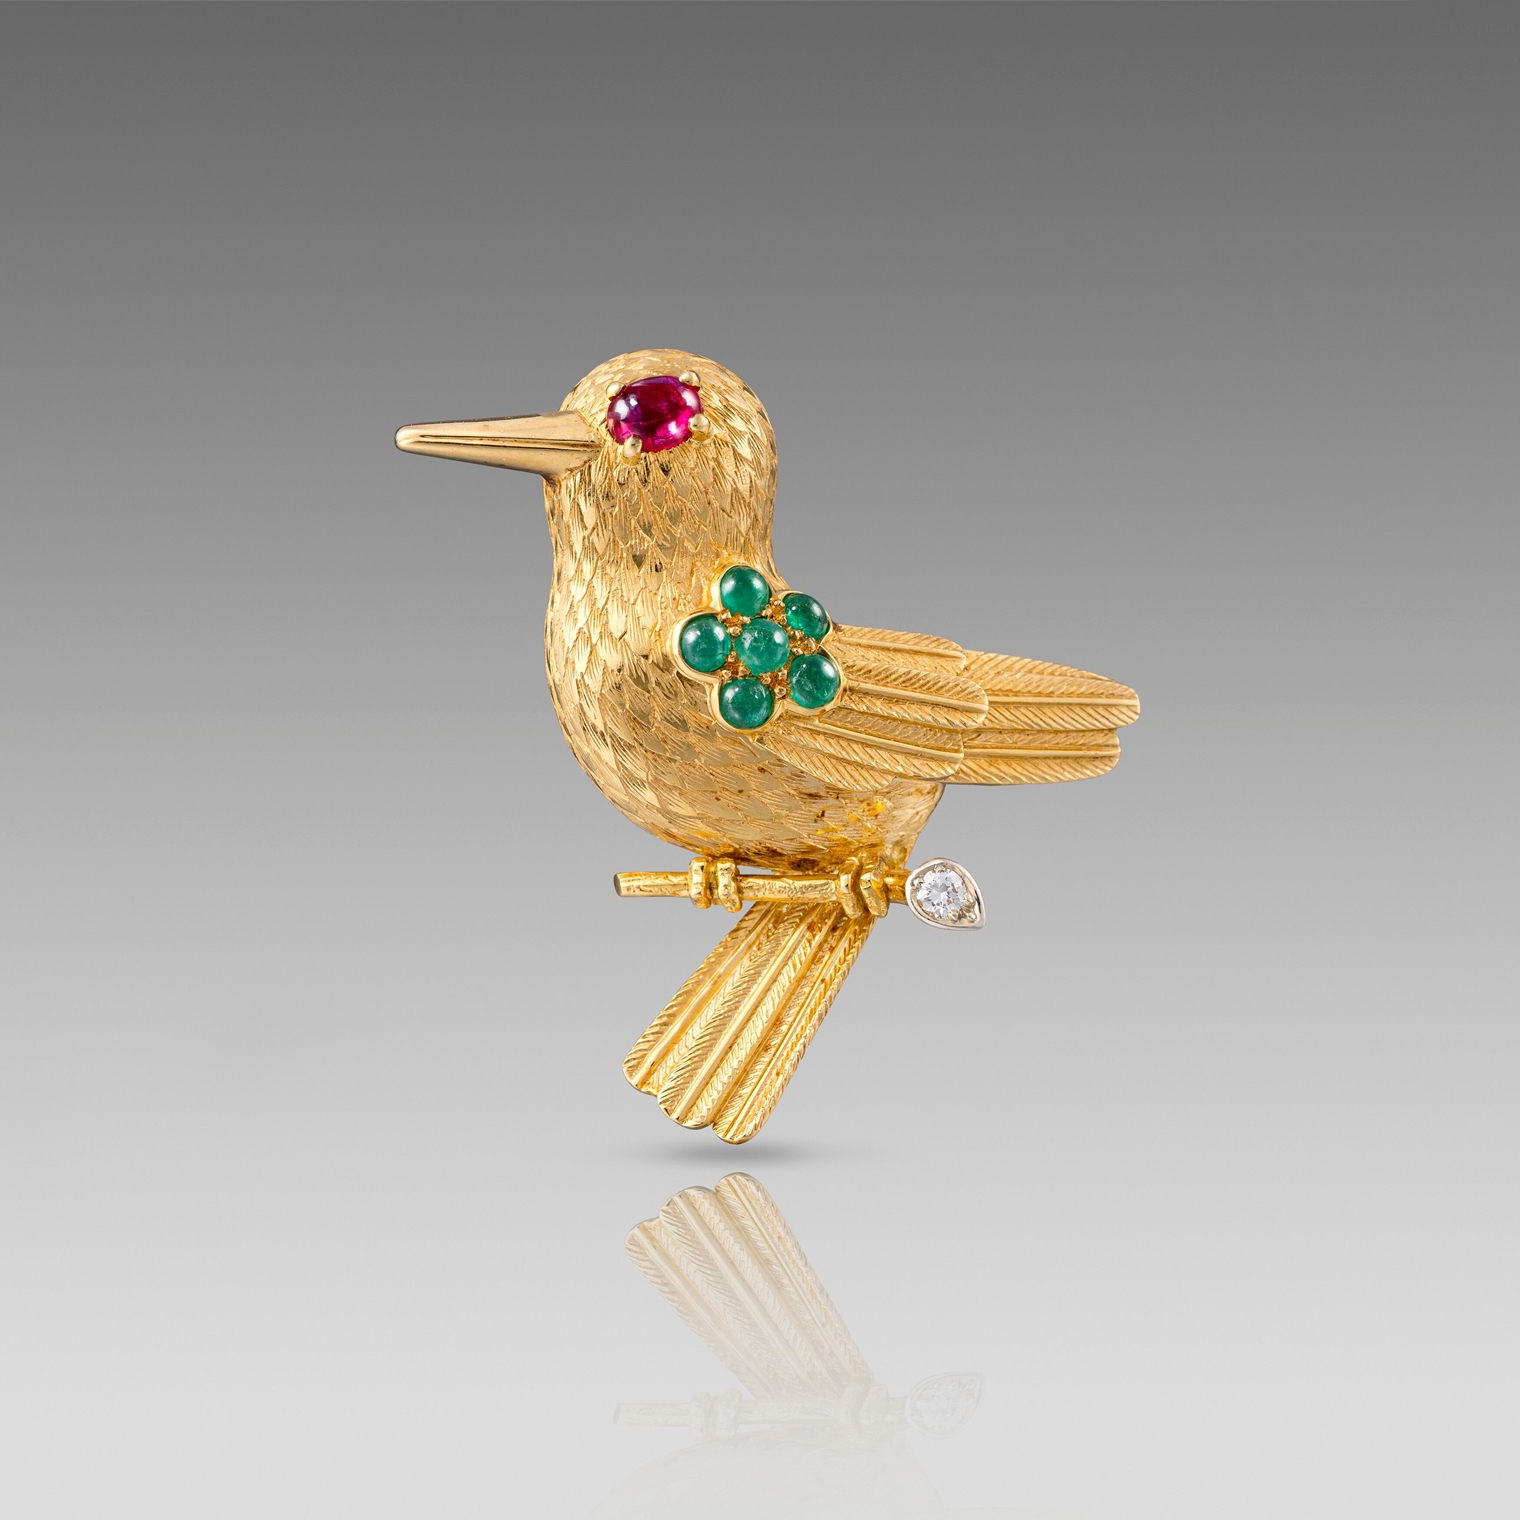 Mid 20th century Gold, Ruby and Emerald Bird Brooch by Cartier